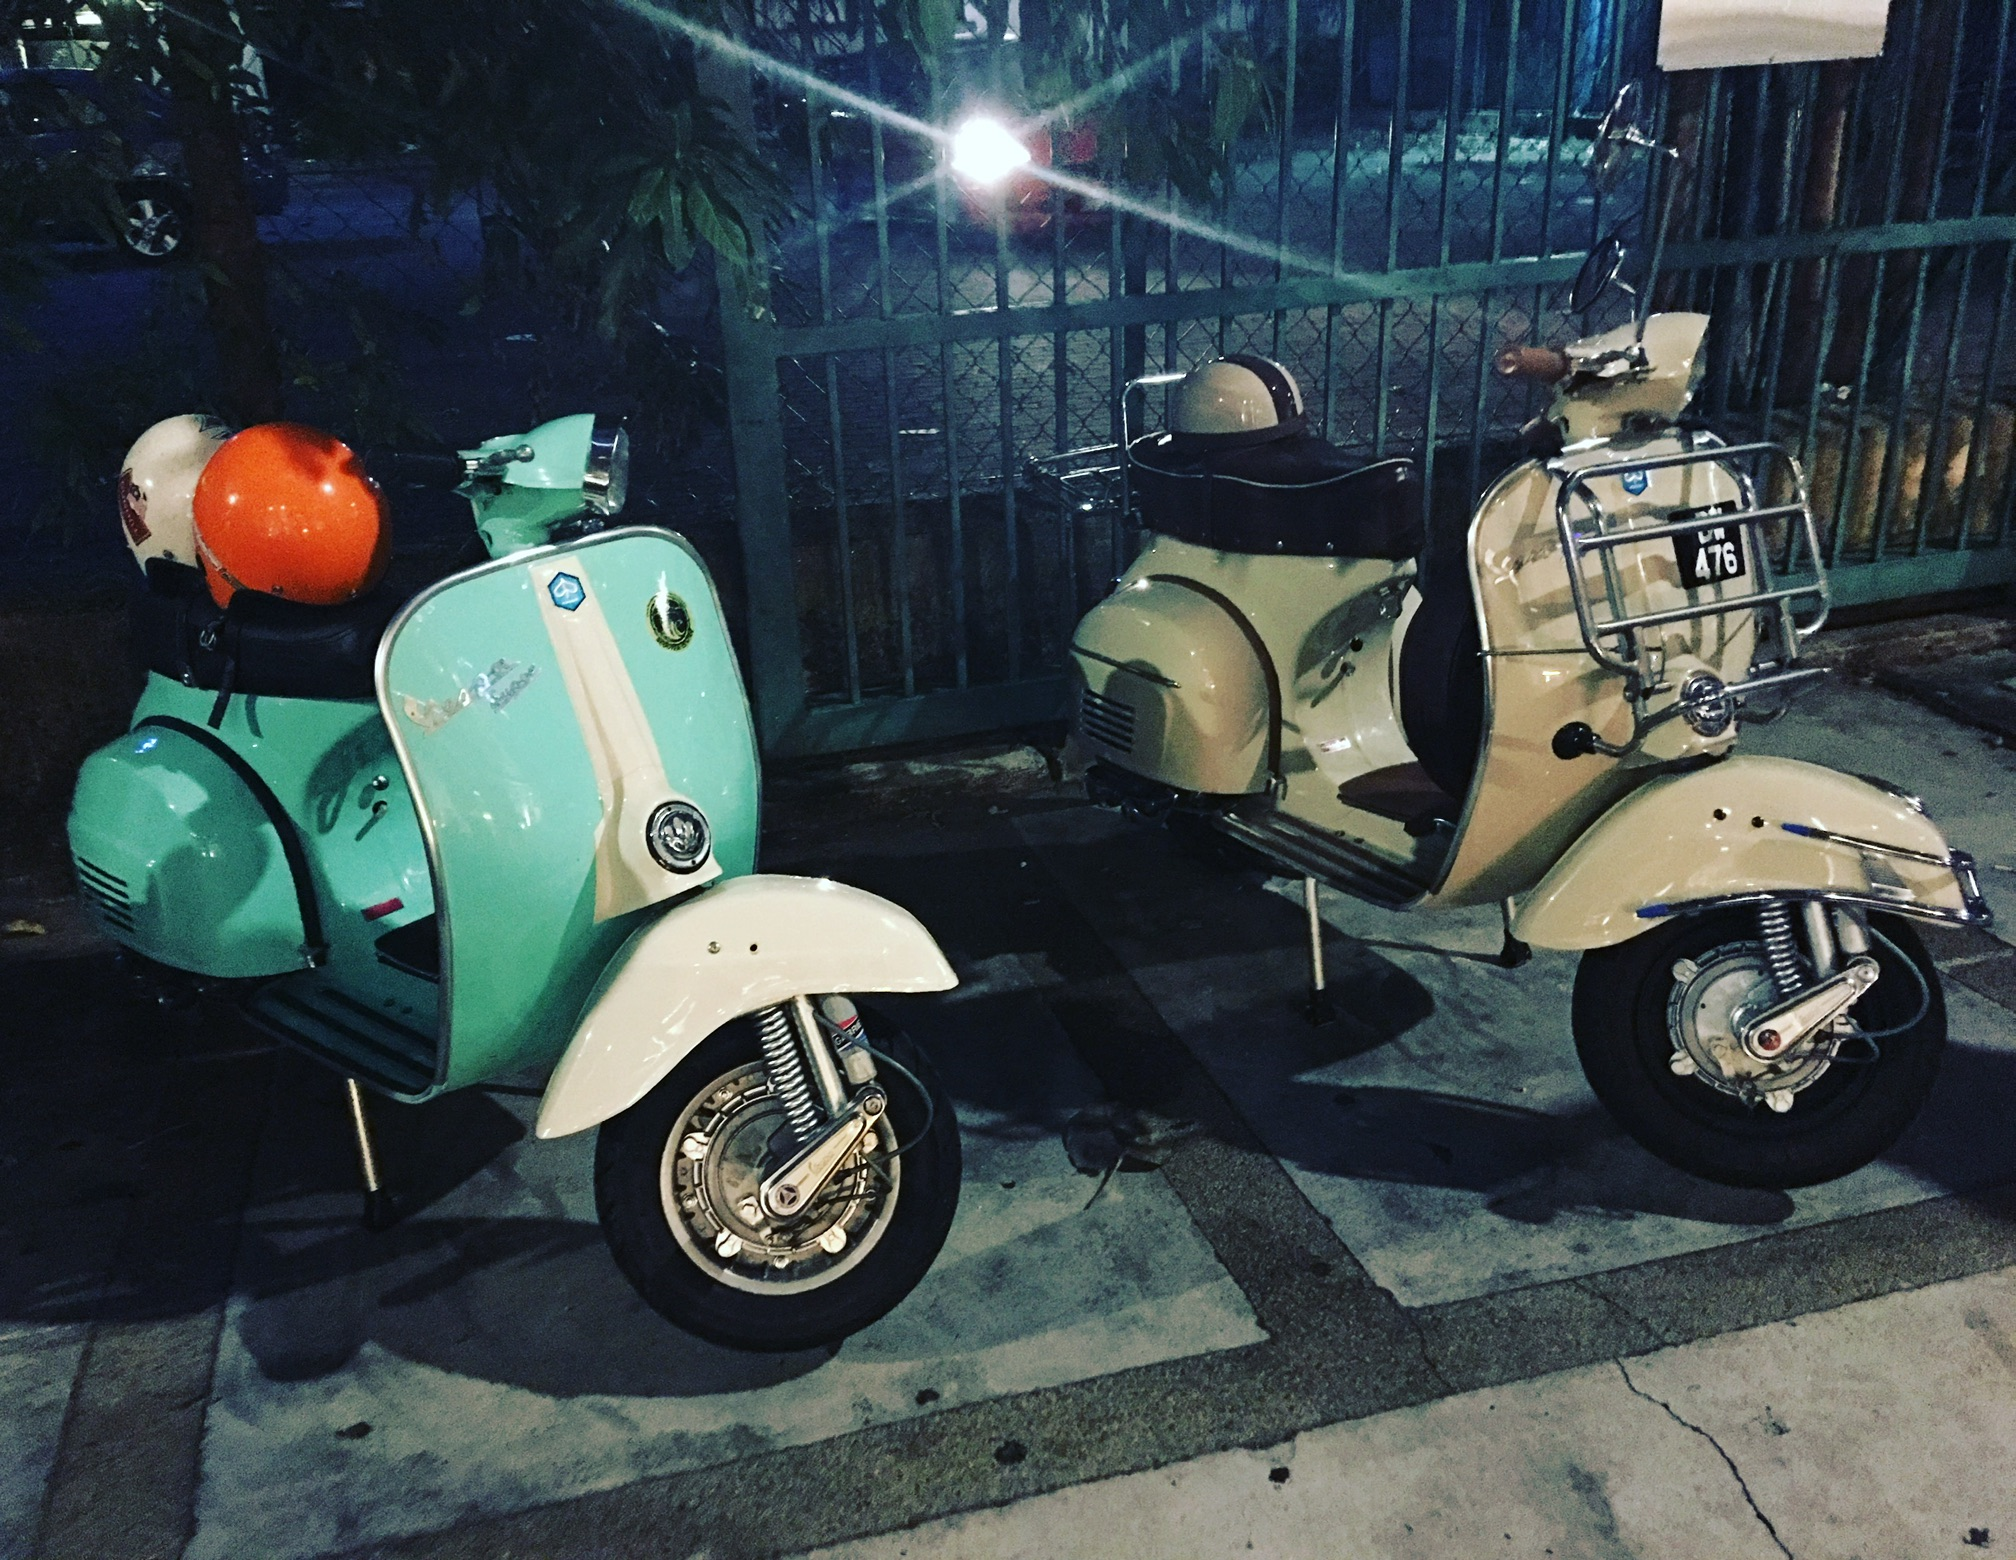 Our totally cool rides for the night (71' and 69' Vespa).